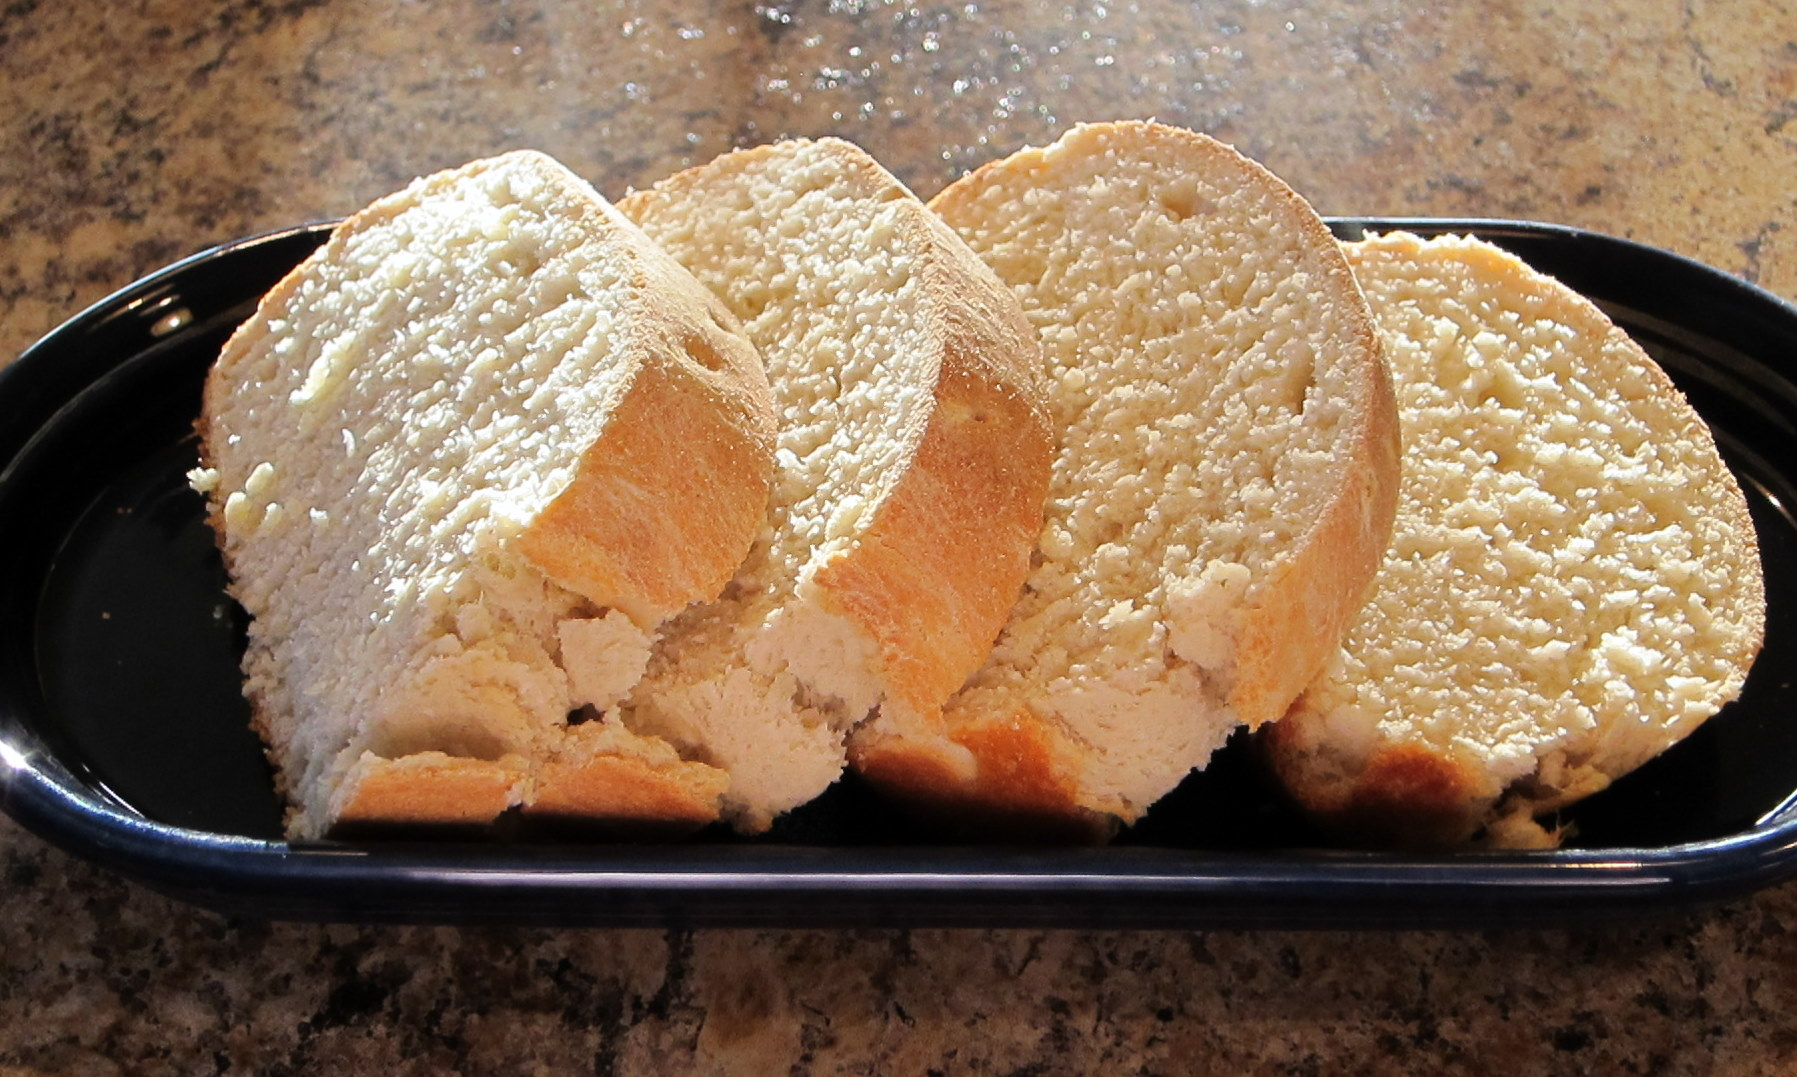 how to finish cooking loaf of bread